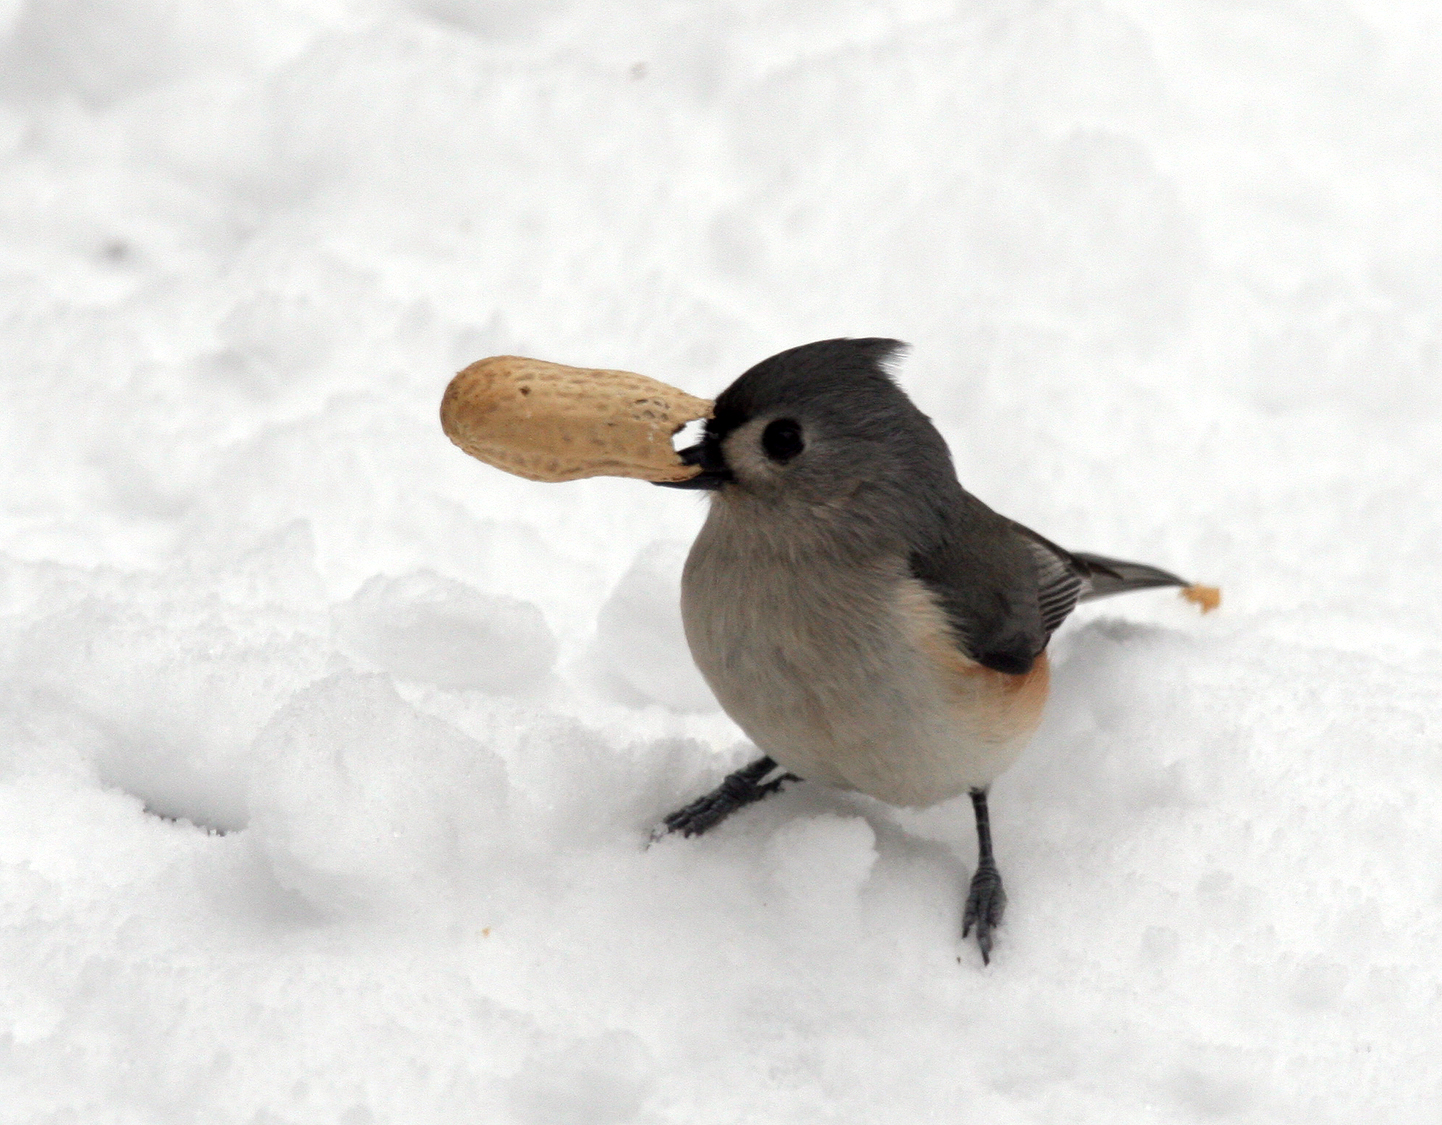 A white-throated swallow in the snow with a peanut shell